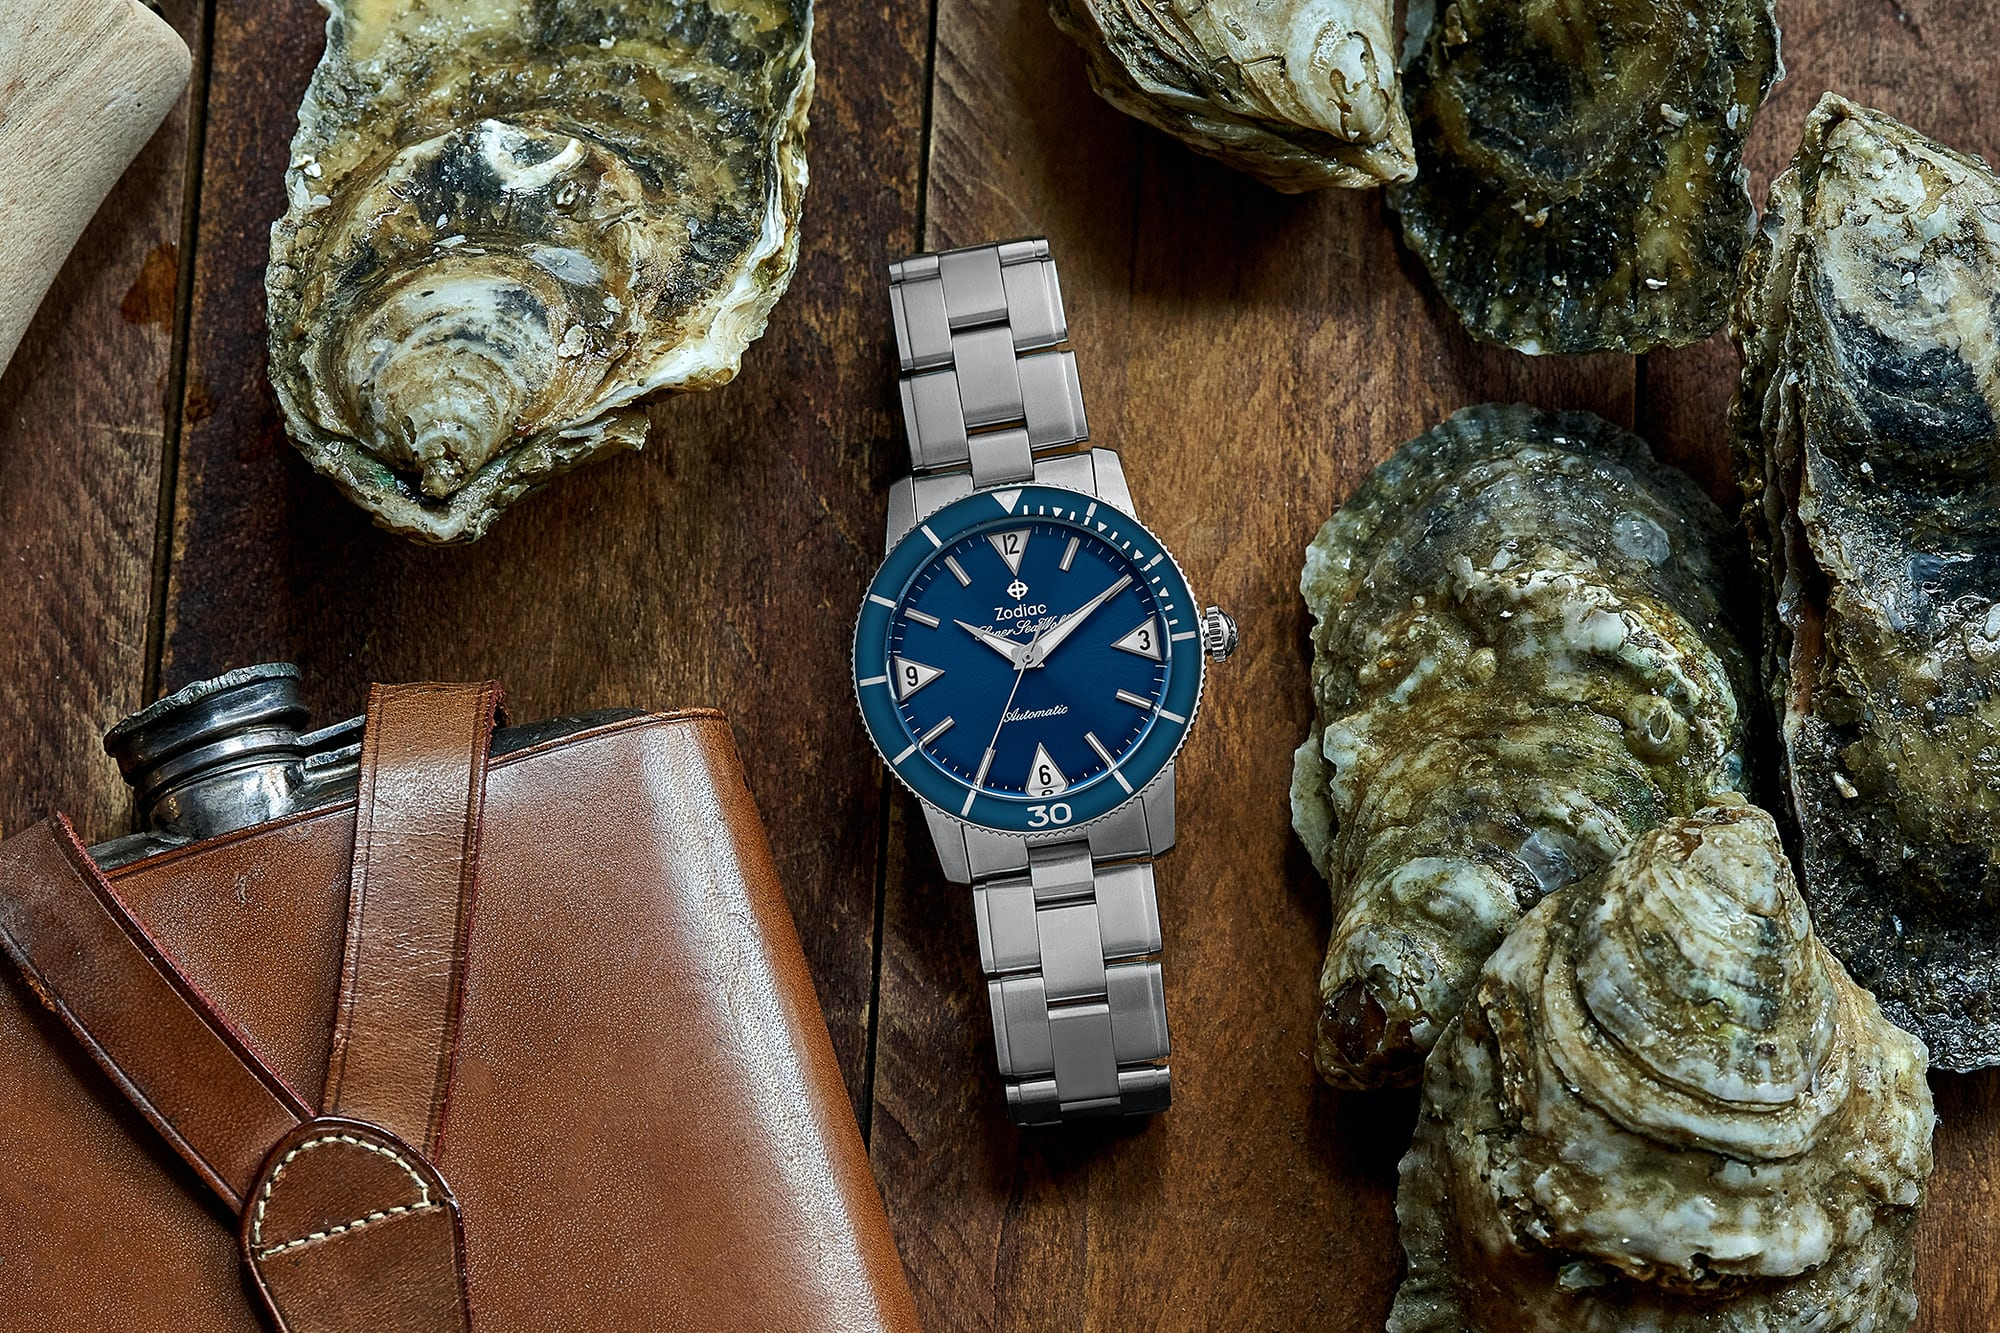 """<p><a href=""""https://shop.hodinkee.com/collections/zodiac/products/zodiac-super-sea-wolf-skin-53-blue-zo9211?variant=32742189498443#&amp;gid=1&amp;pid=3"""" rel=""""noopener"""" target=""""_blank""""><u>Zodiac Super Sea Wolf 53 Skin 'Blue' ZO9211</u></a></p>"""